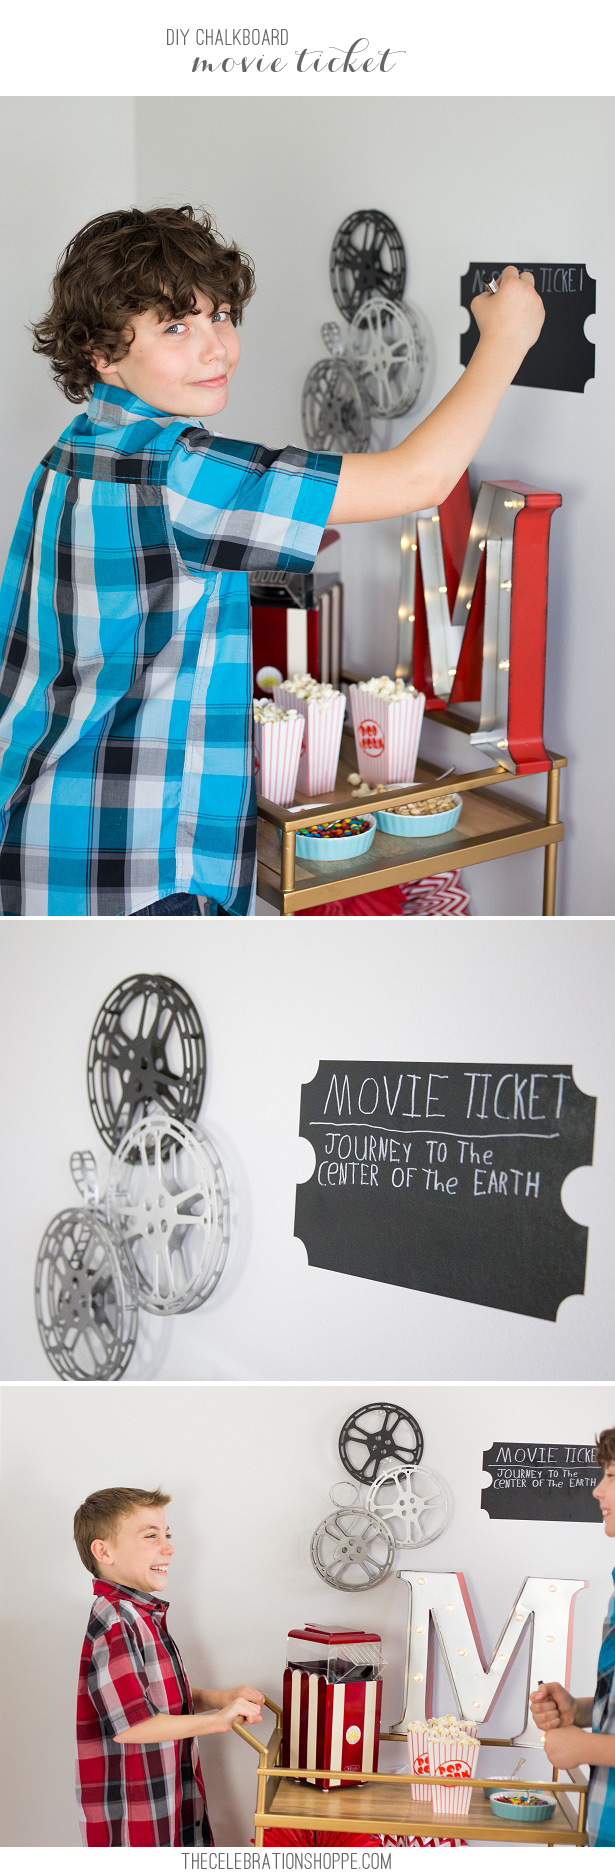 Diy chalkboard movie ticket kim byers